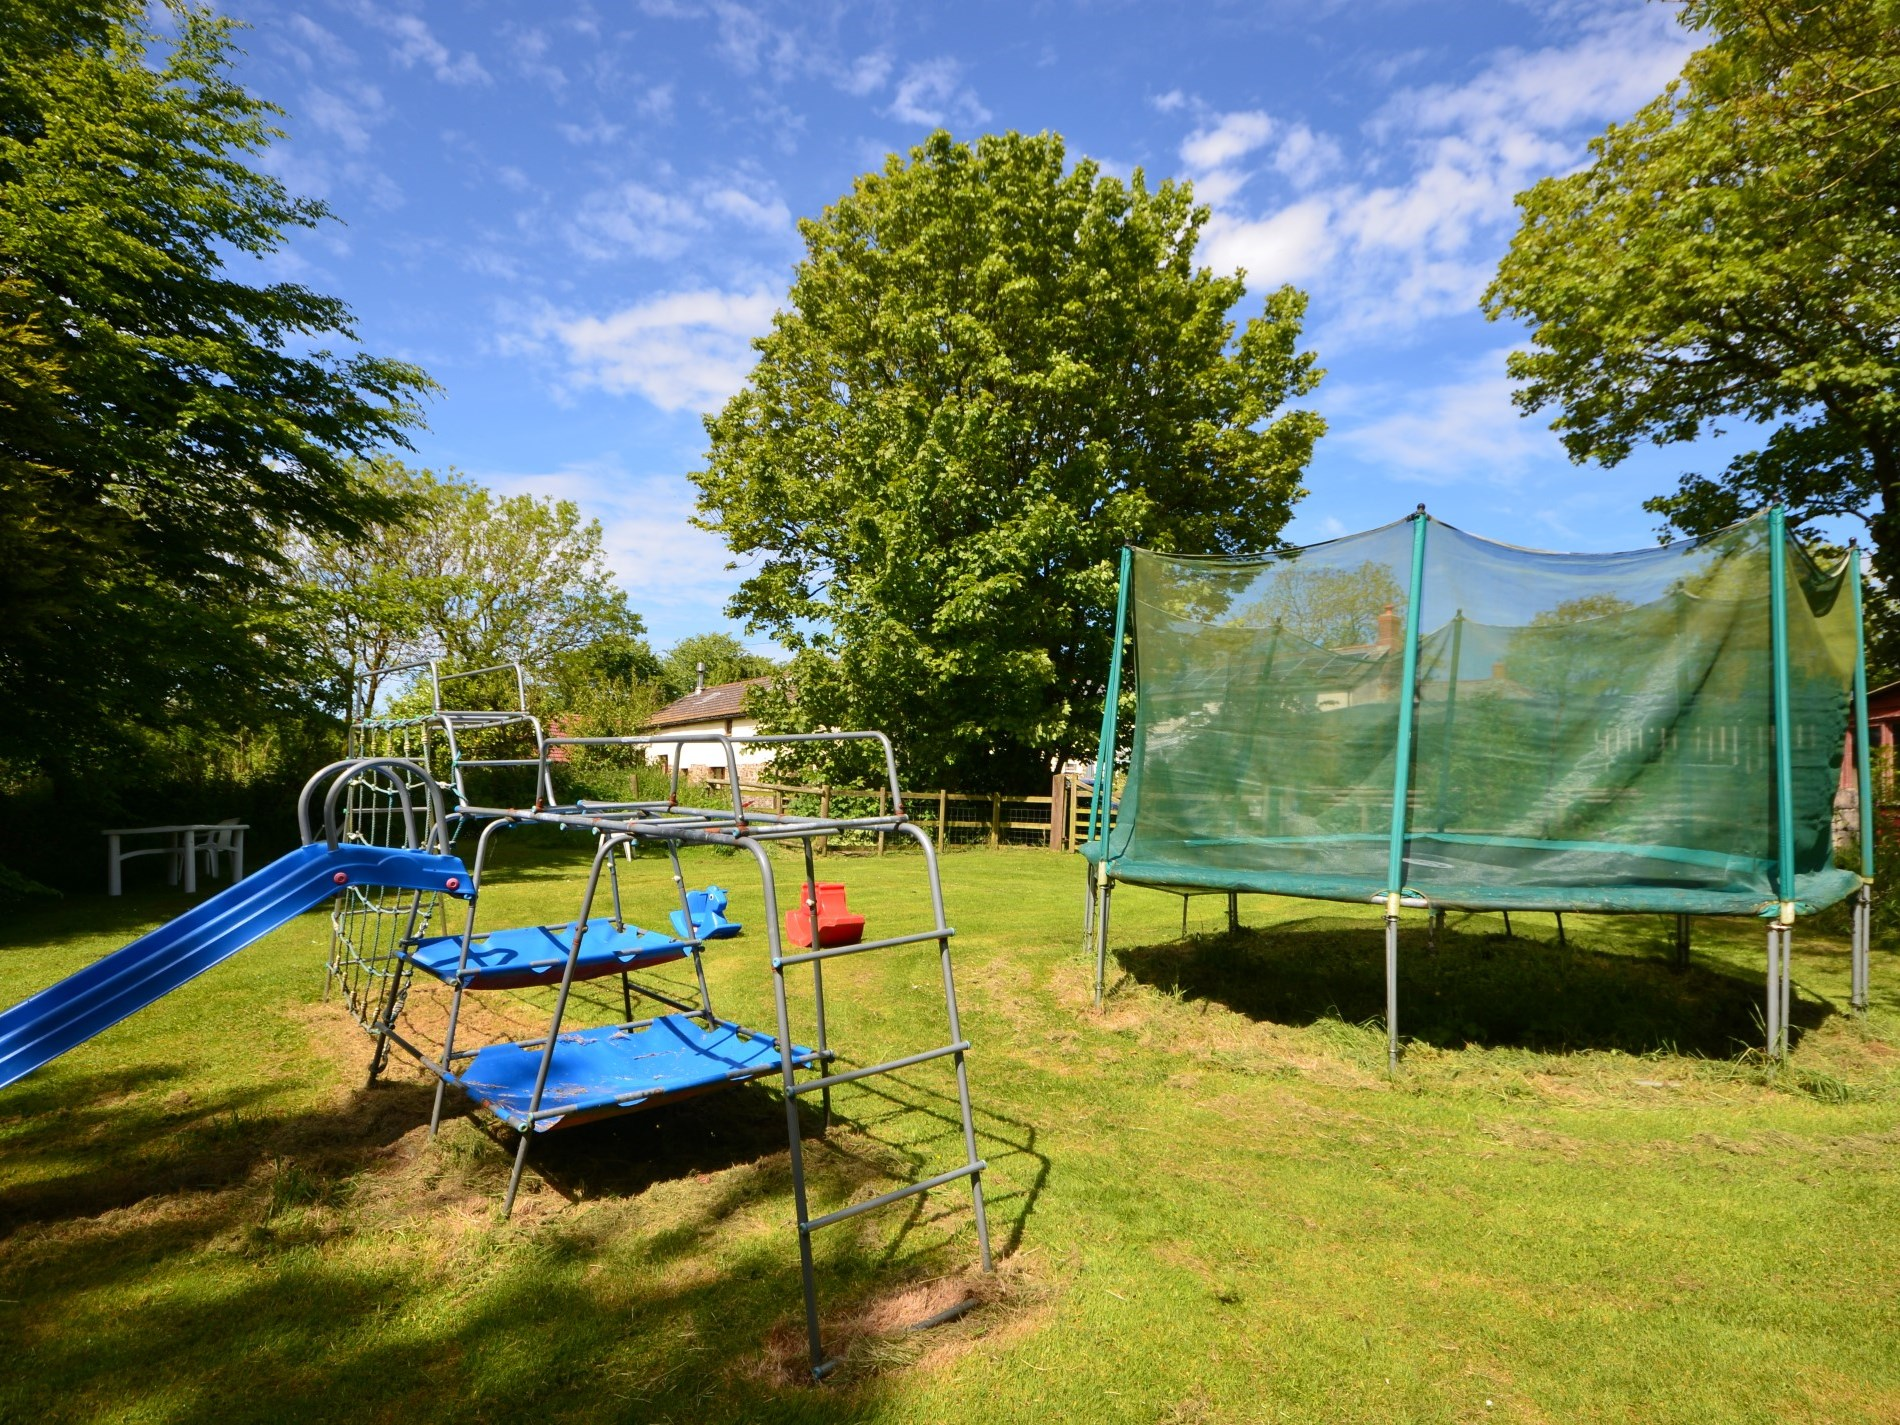 Plenty of space for the children to play